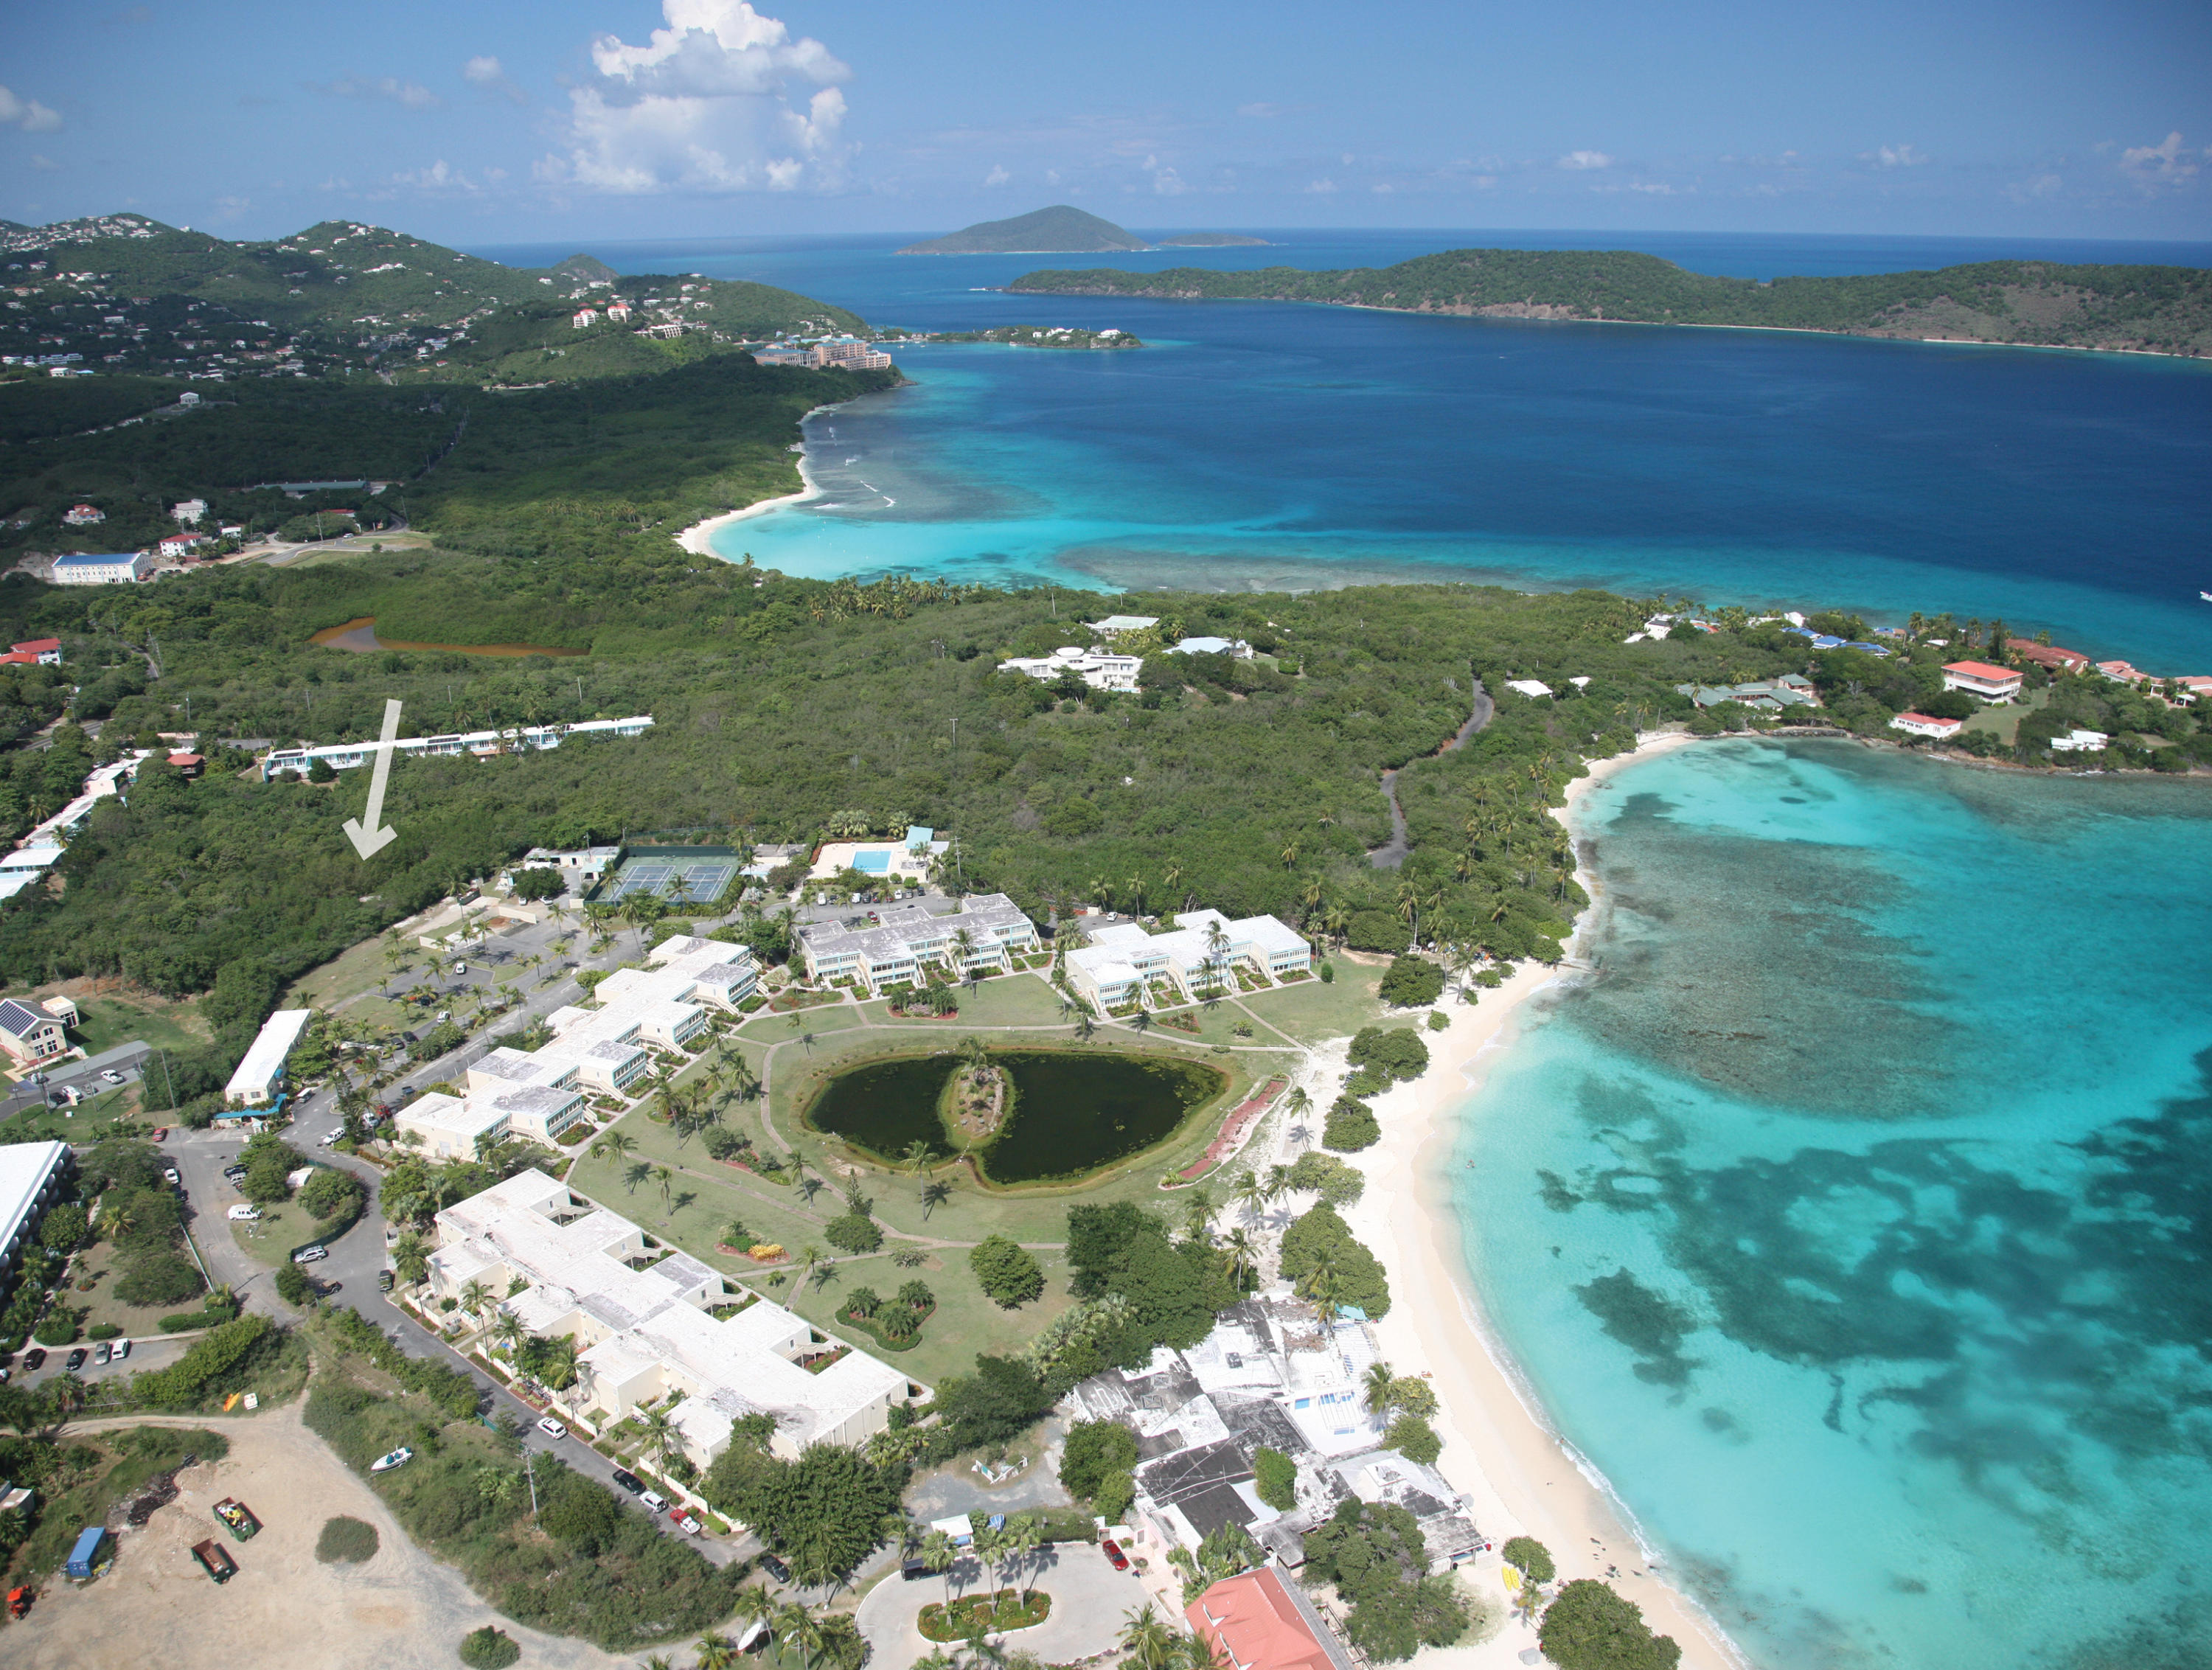 Land for Sale at 11-F, 15A Smith Bay EE 11-F, 15A Smith Bay EE St Thomas, Virgin Islands 00802 United States Virgin Islands